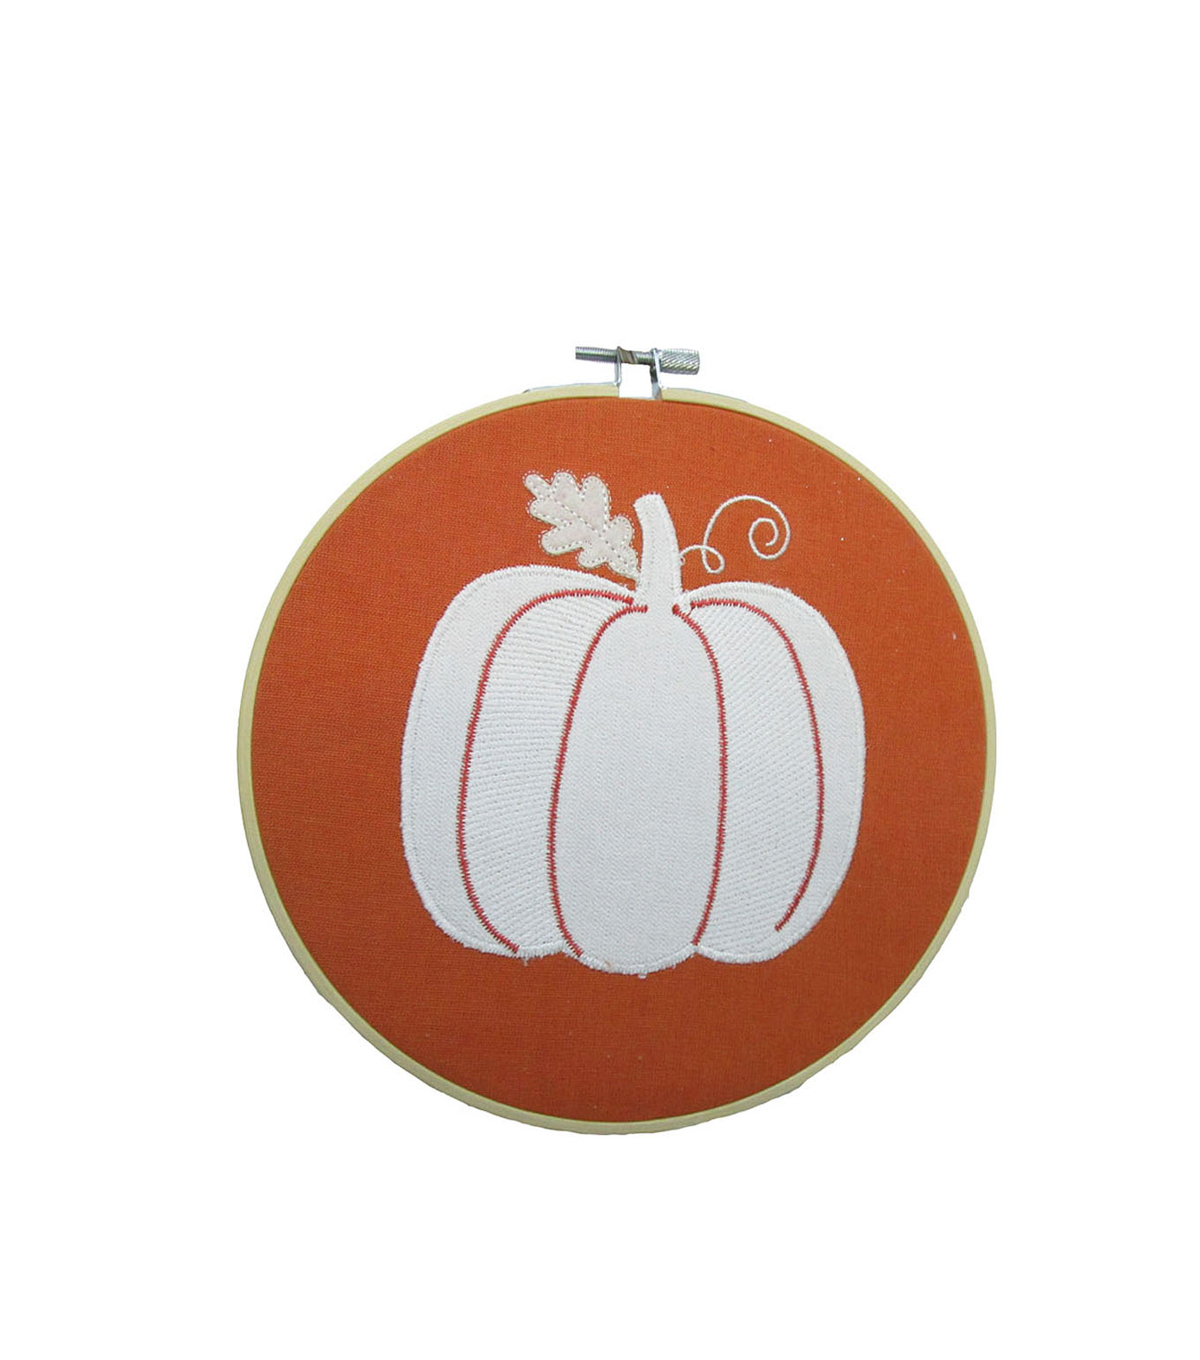 Simply Autumn Embroidery Hoop Pumpkin              Simply Autumn Embroidery Hoop Pumpkin by Simply Autumn